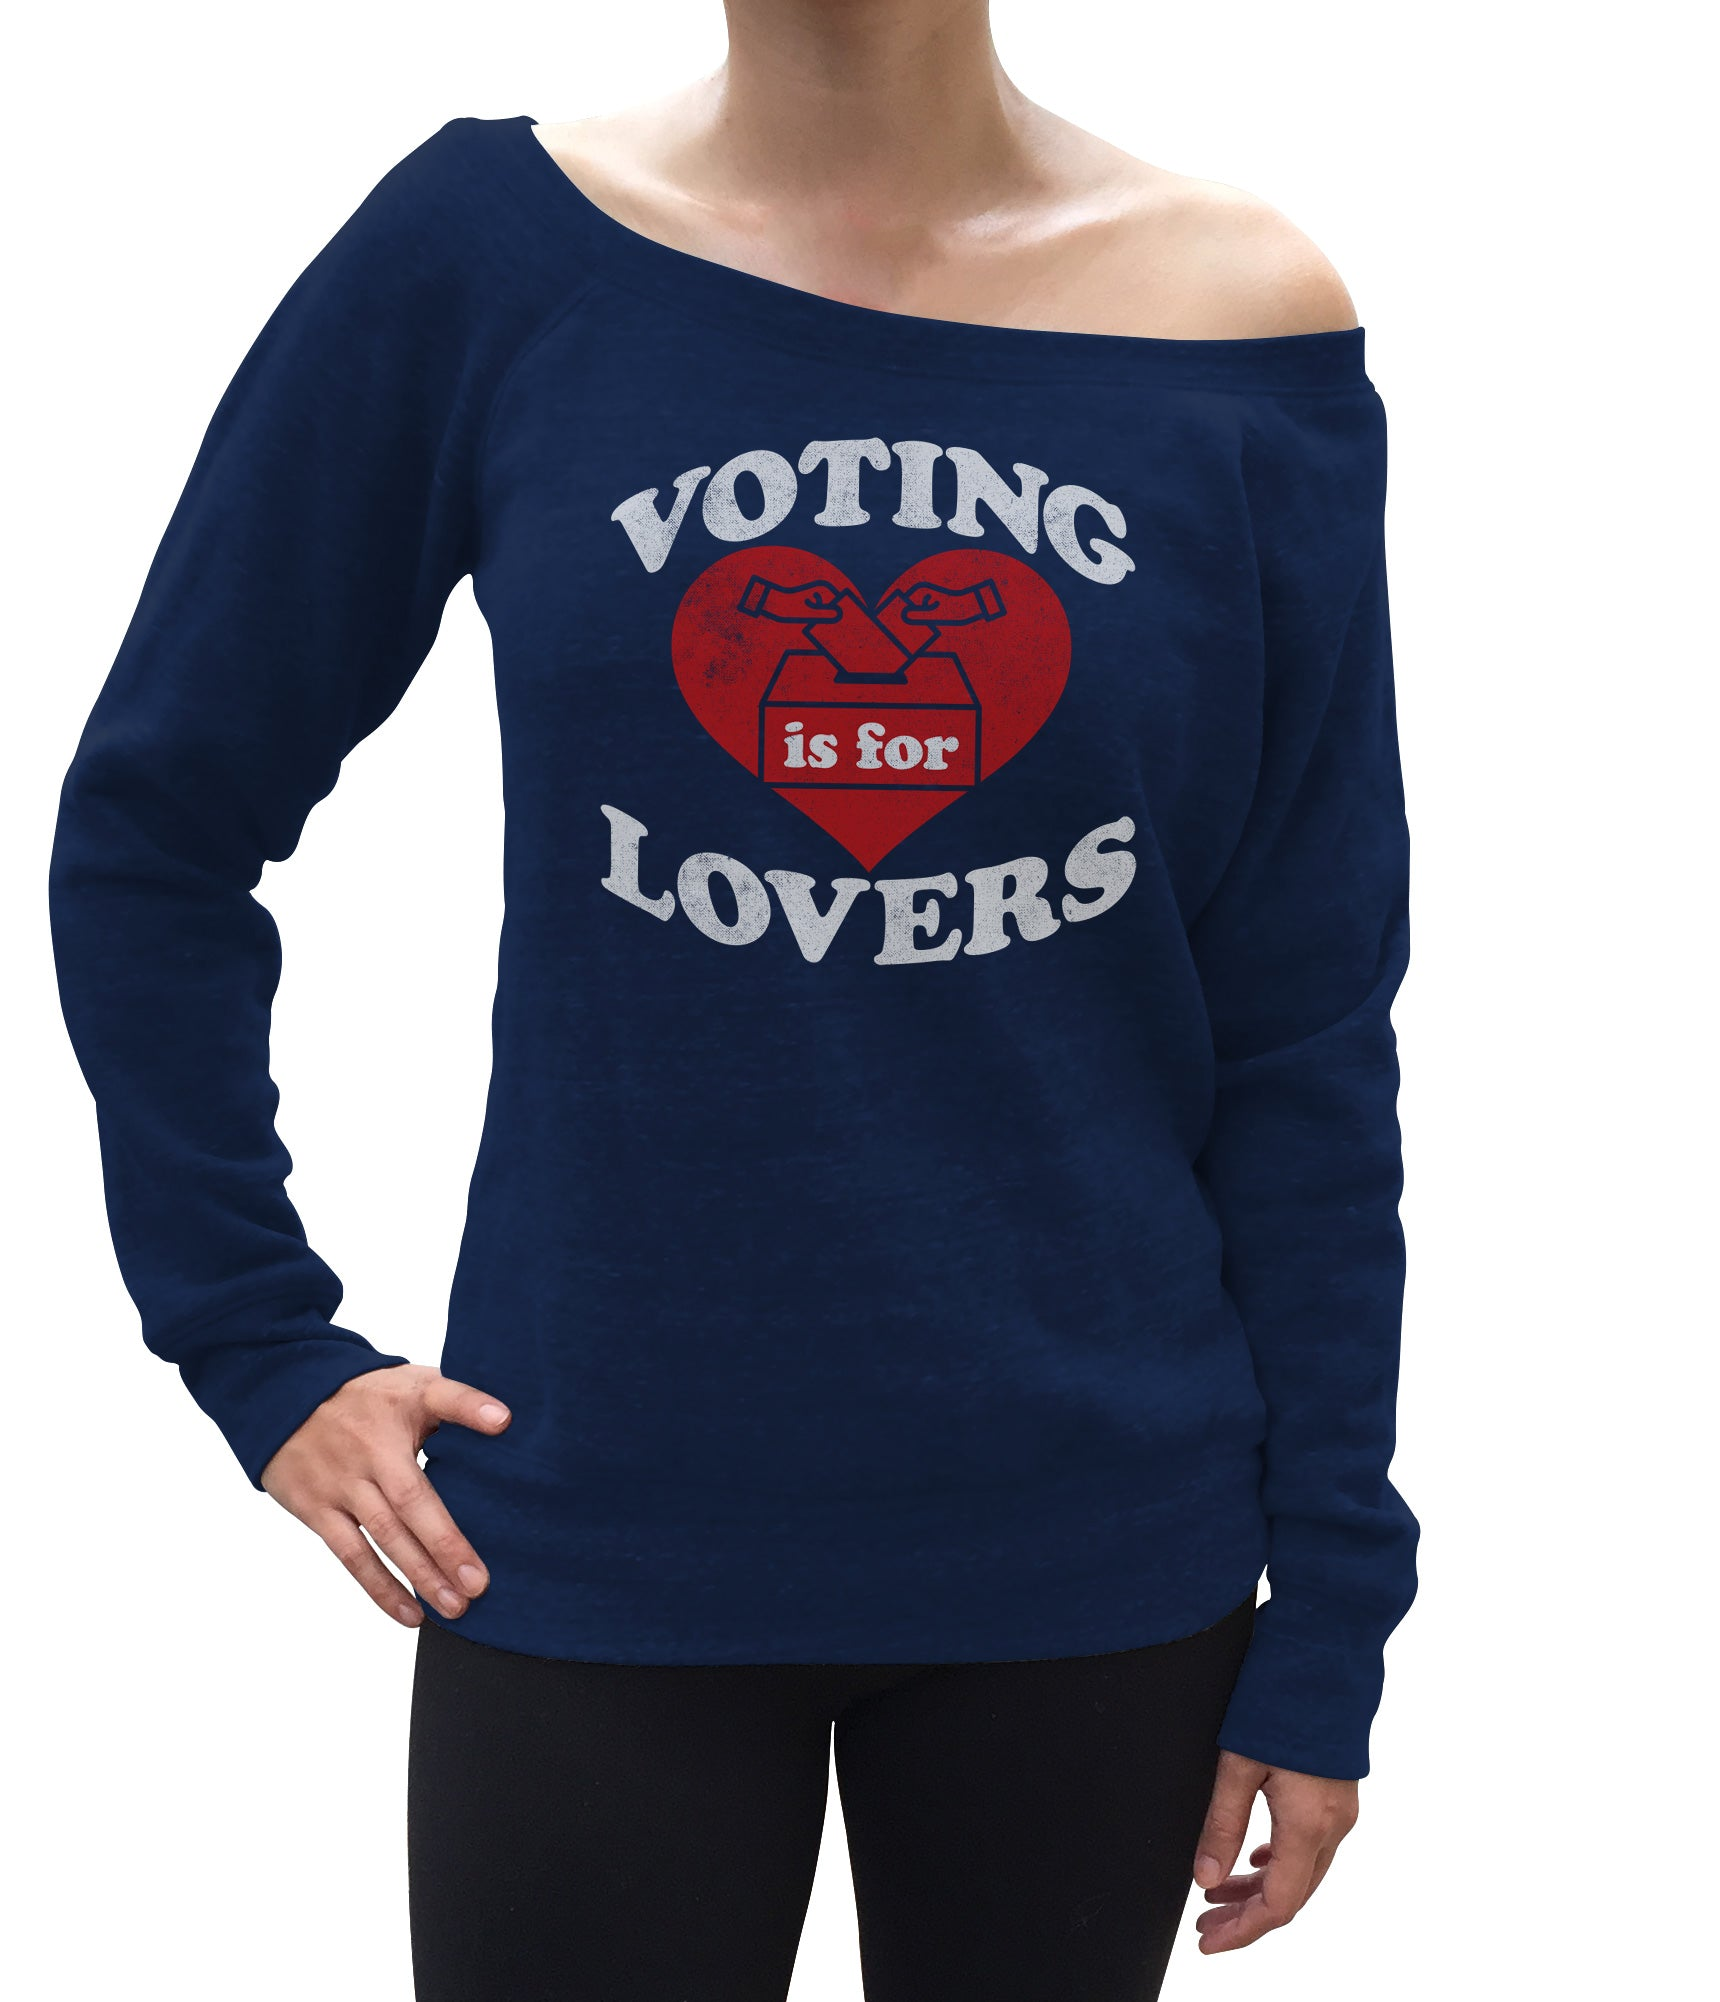 Women's Voting Is For Lovers Scoop Neck Fleece